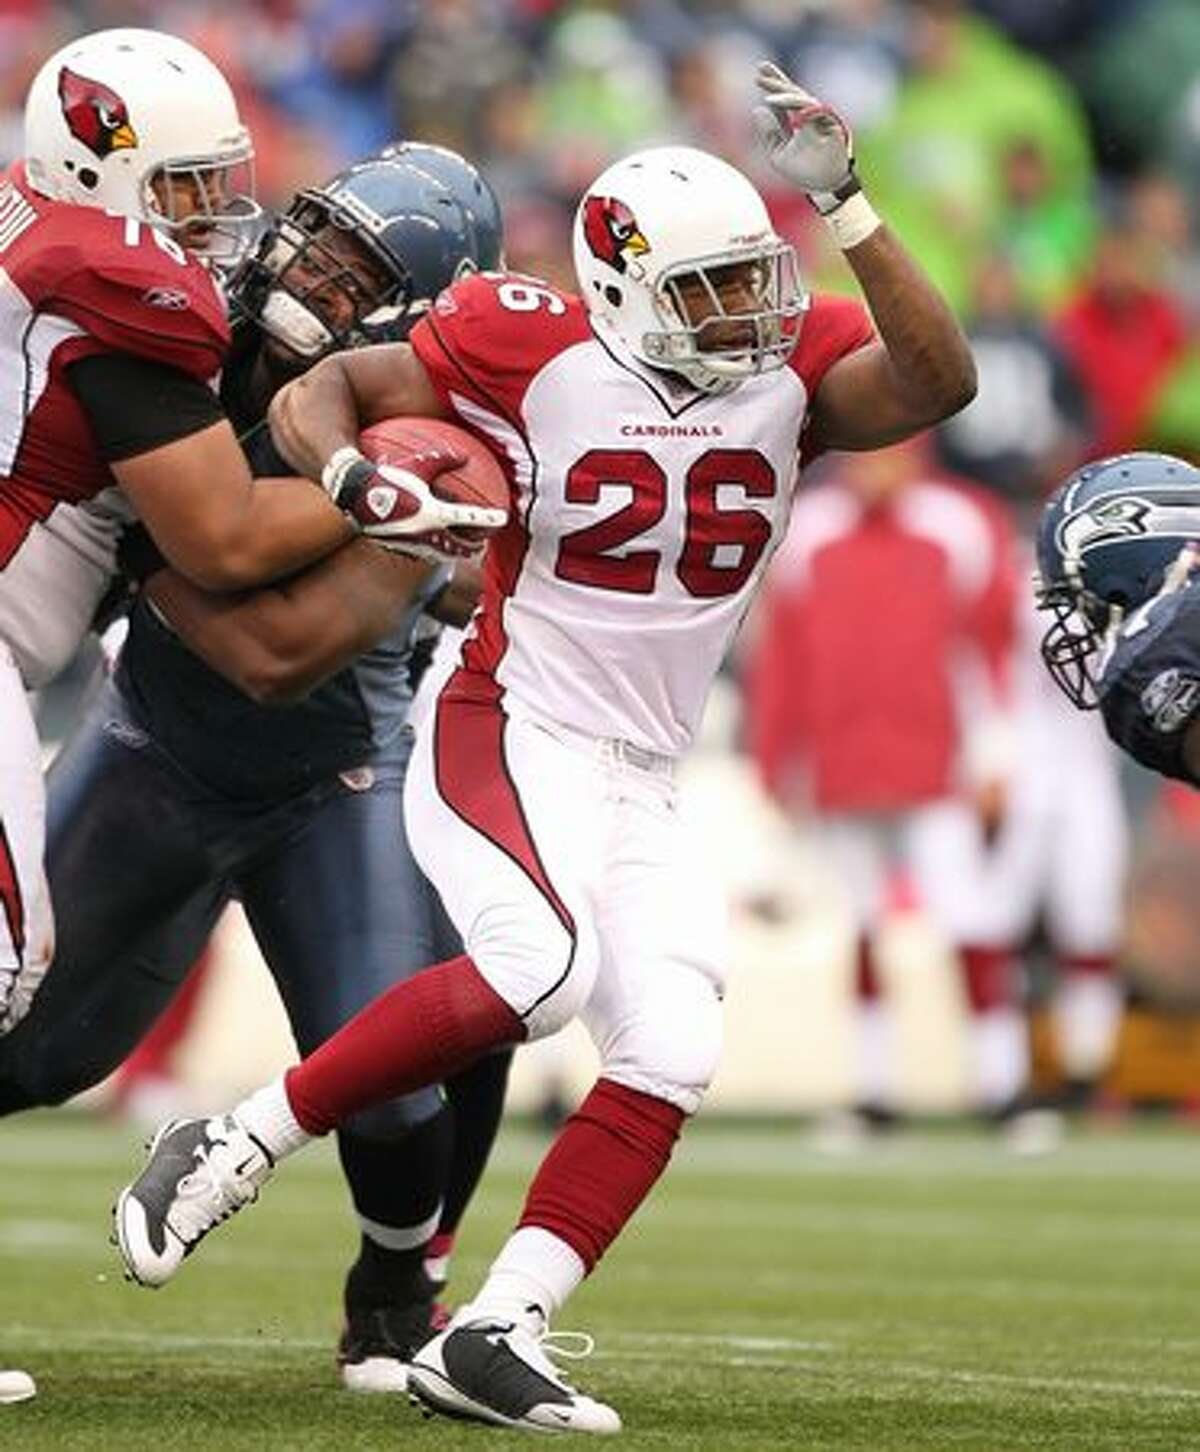 Running back Beanie Wells #26 of the Arizona Cardinals rushes against the Seattle Seahawks at Qwest Field in Seattle on Sunday, Oct. 24, 2010.